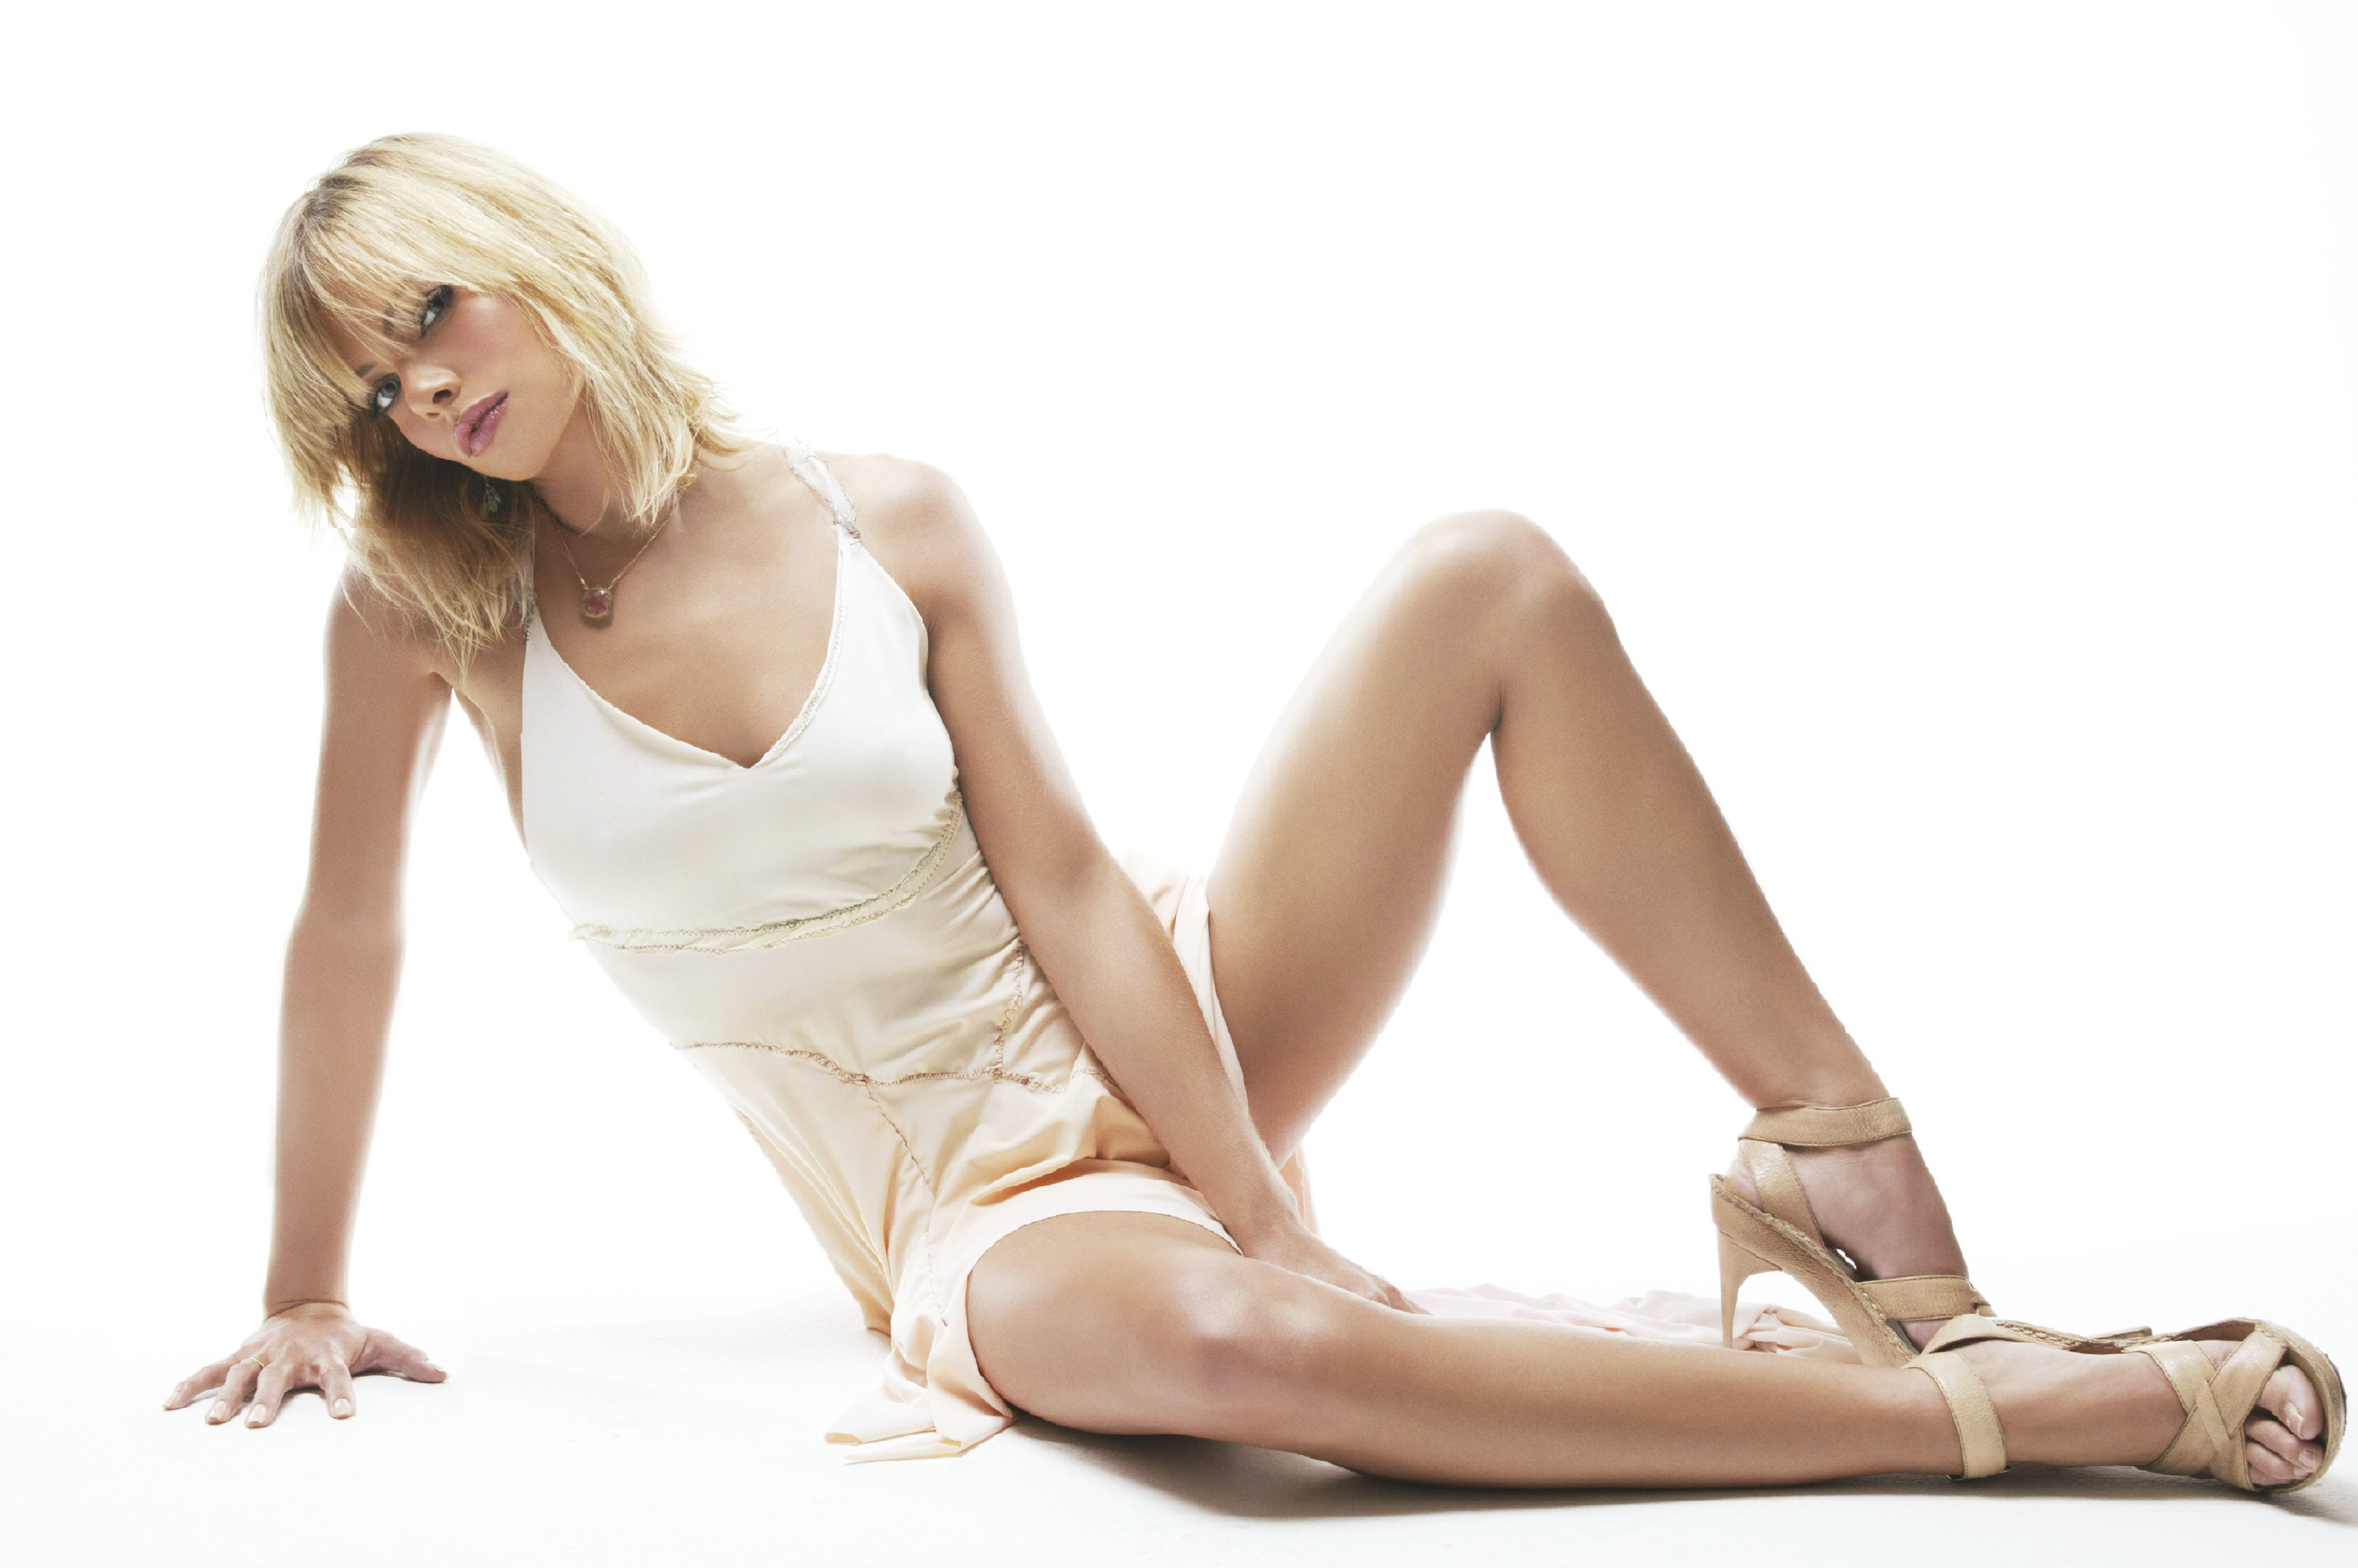 3473x2310 - Jaime Pressly Wallpapers 23